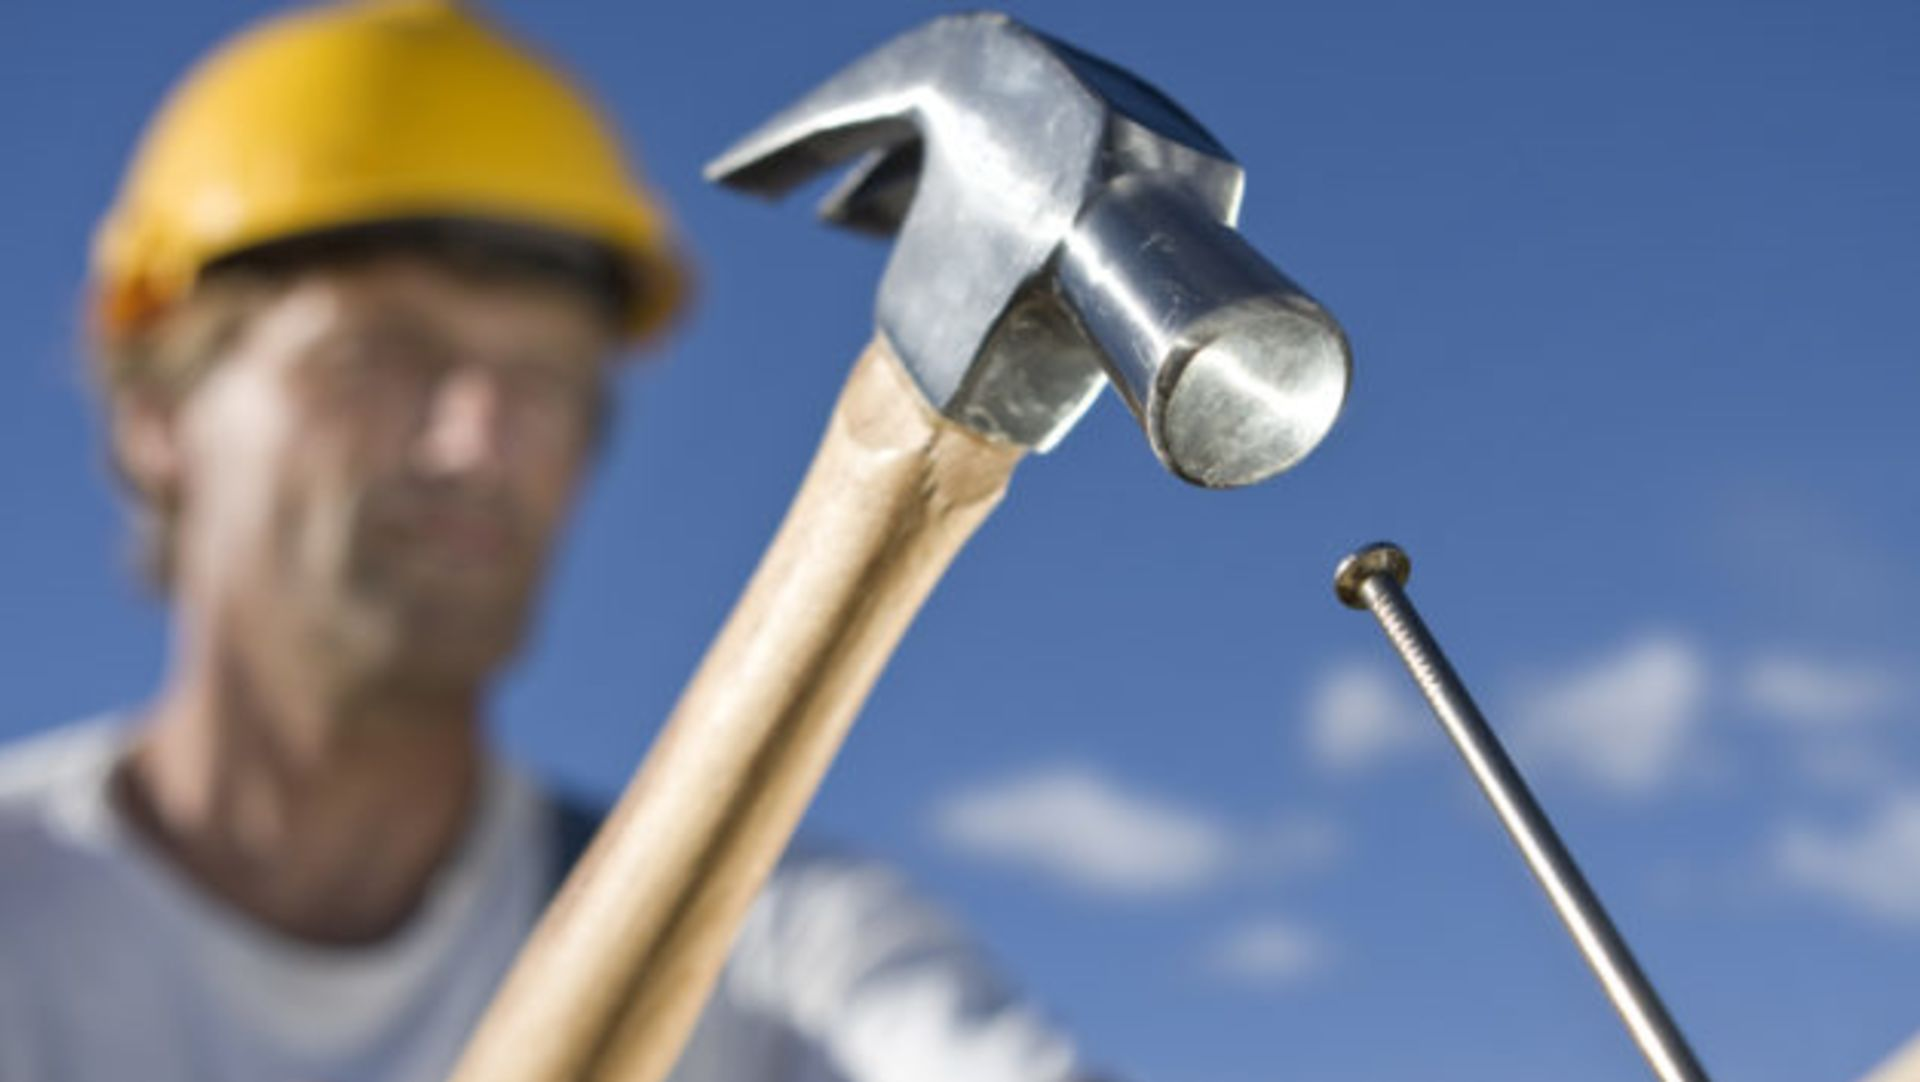 It's Hammer Time! 4 Concrete Reasons to Remodel Your Home in 2017